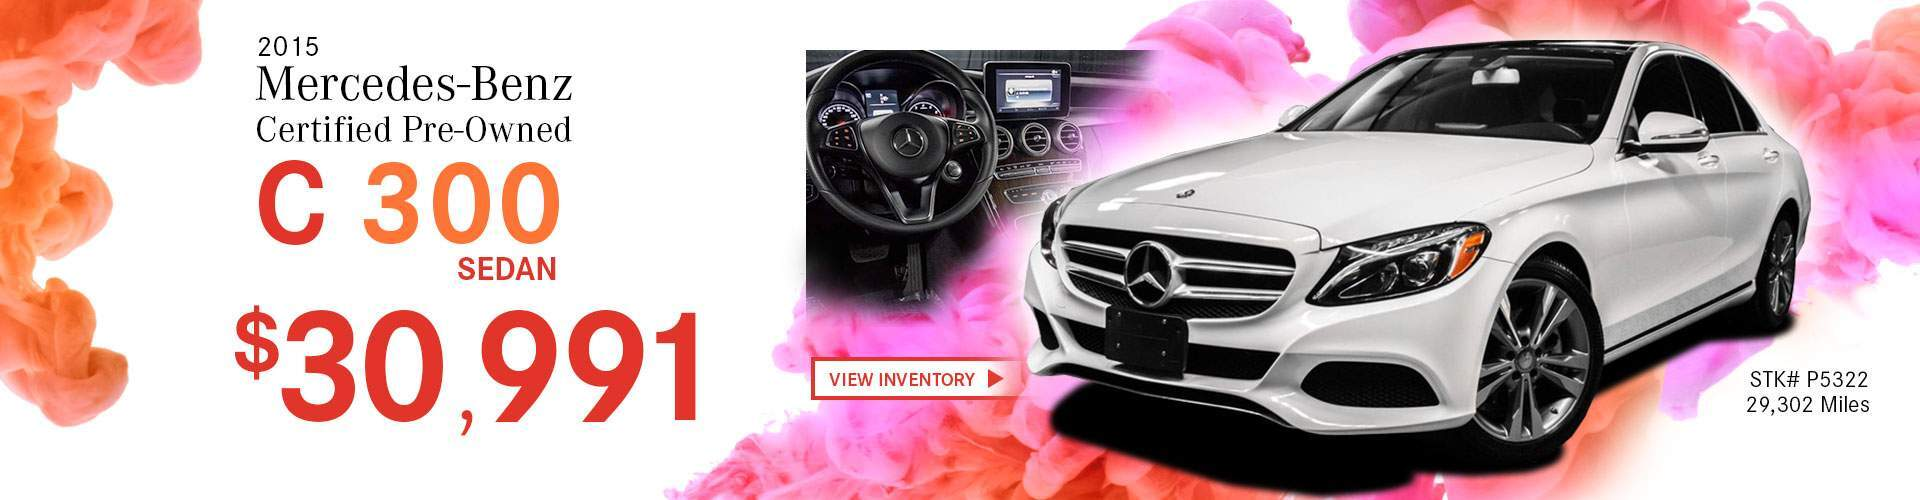 2015 Mercedes-Benz Certified Pre-Owned C 300